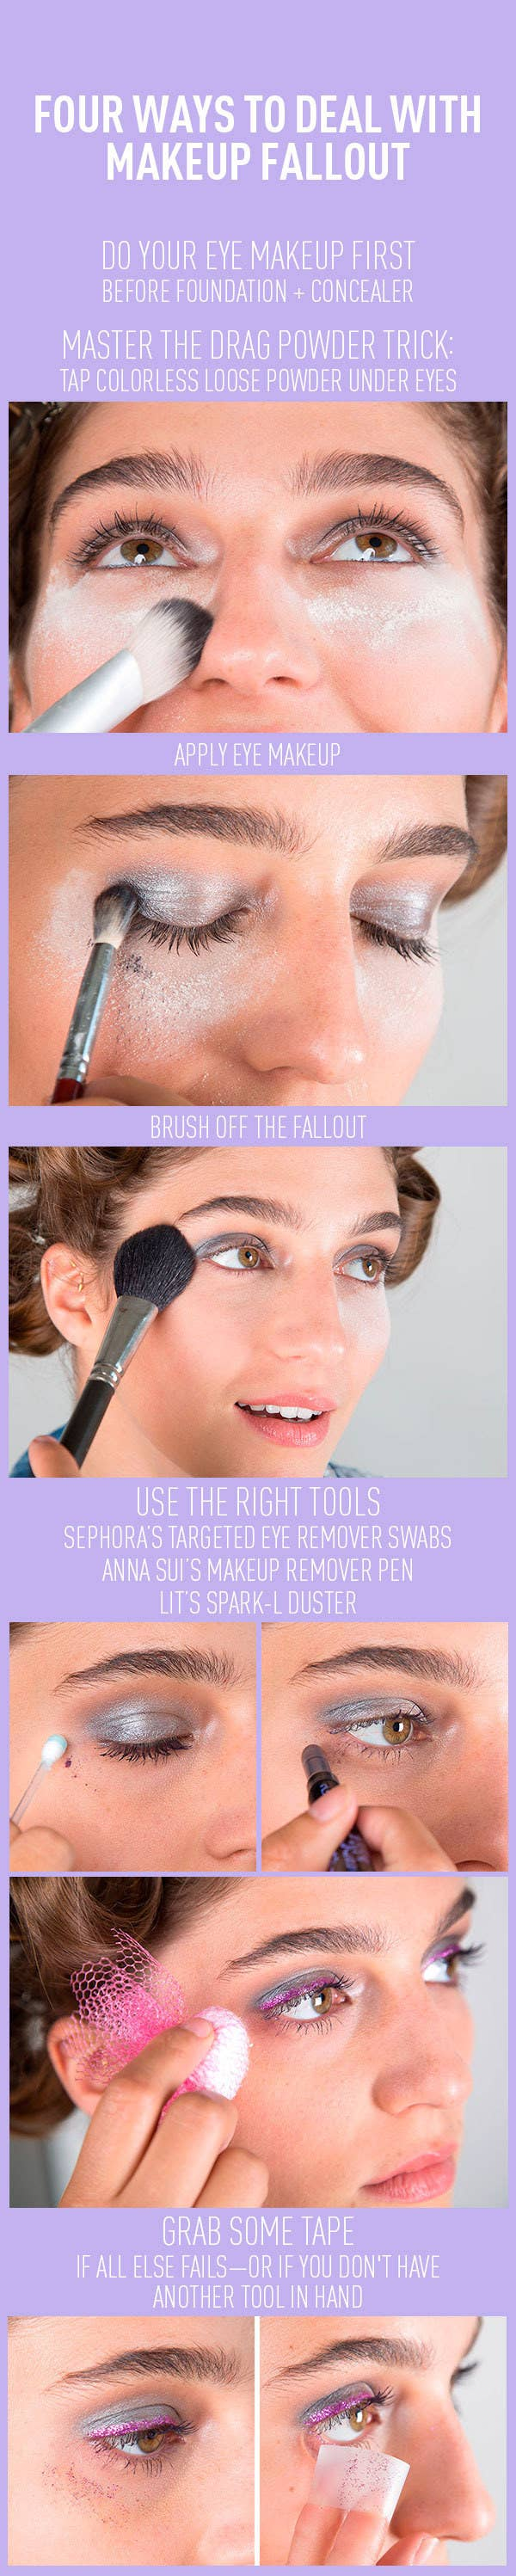 Makeup Fallout Is Inevitable (especially With Darker Shadows), But There  Are Definitely Ways To Fix It